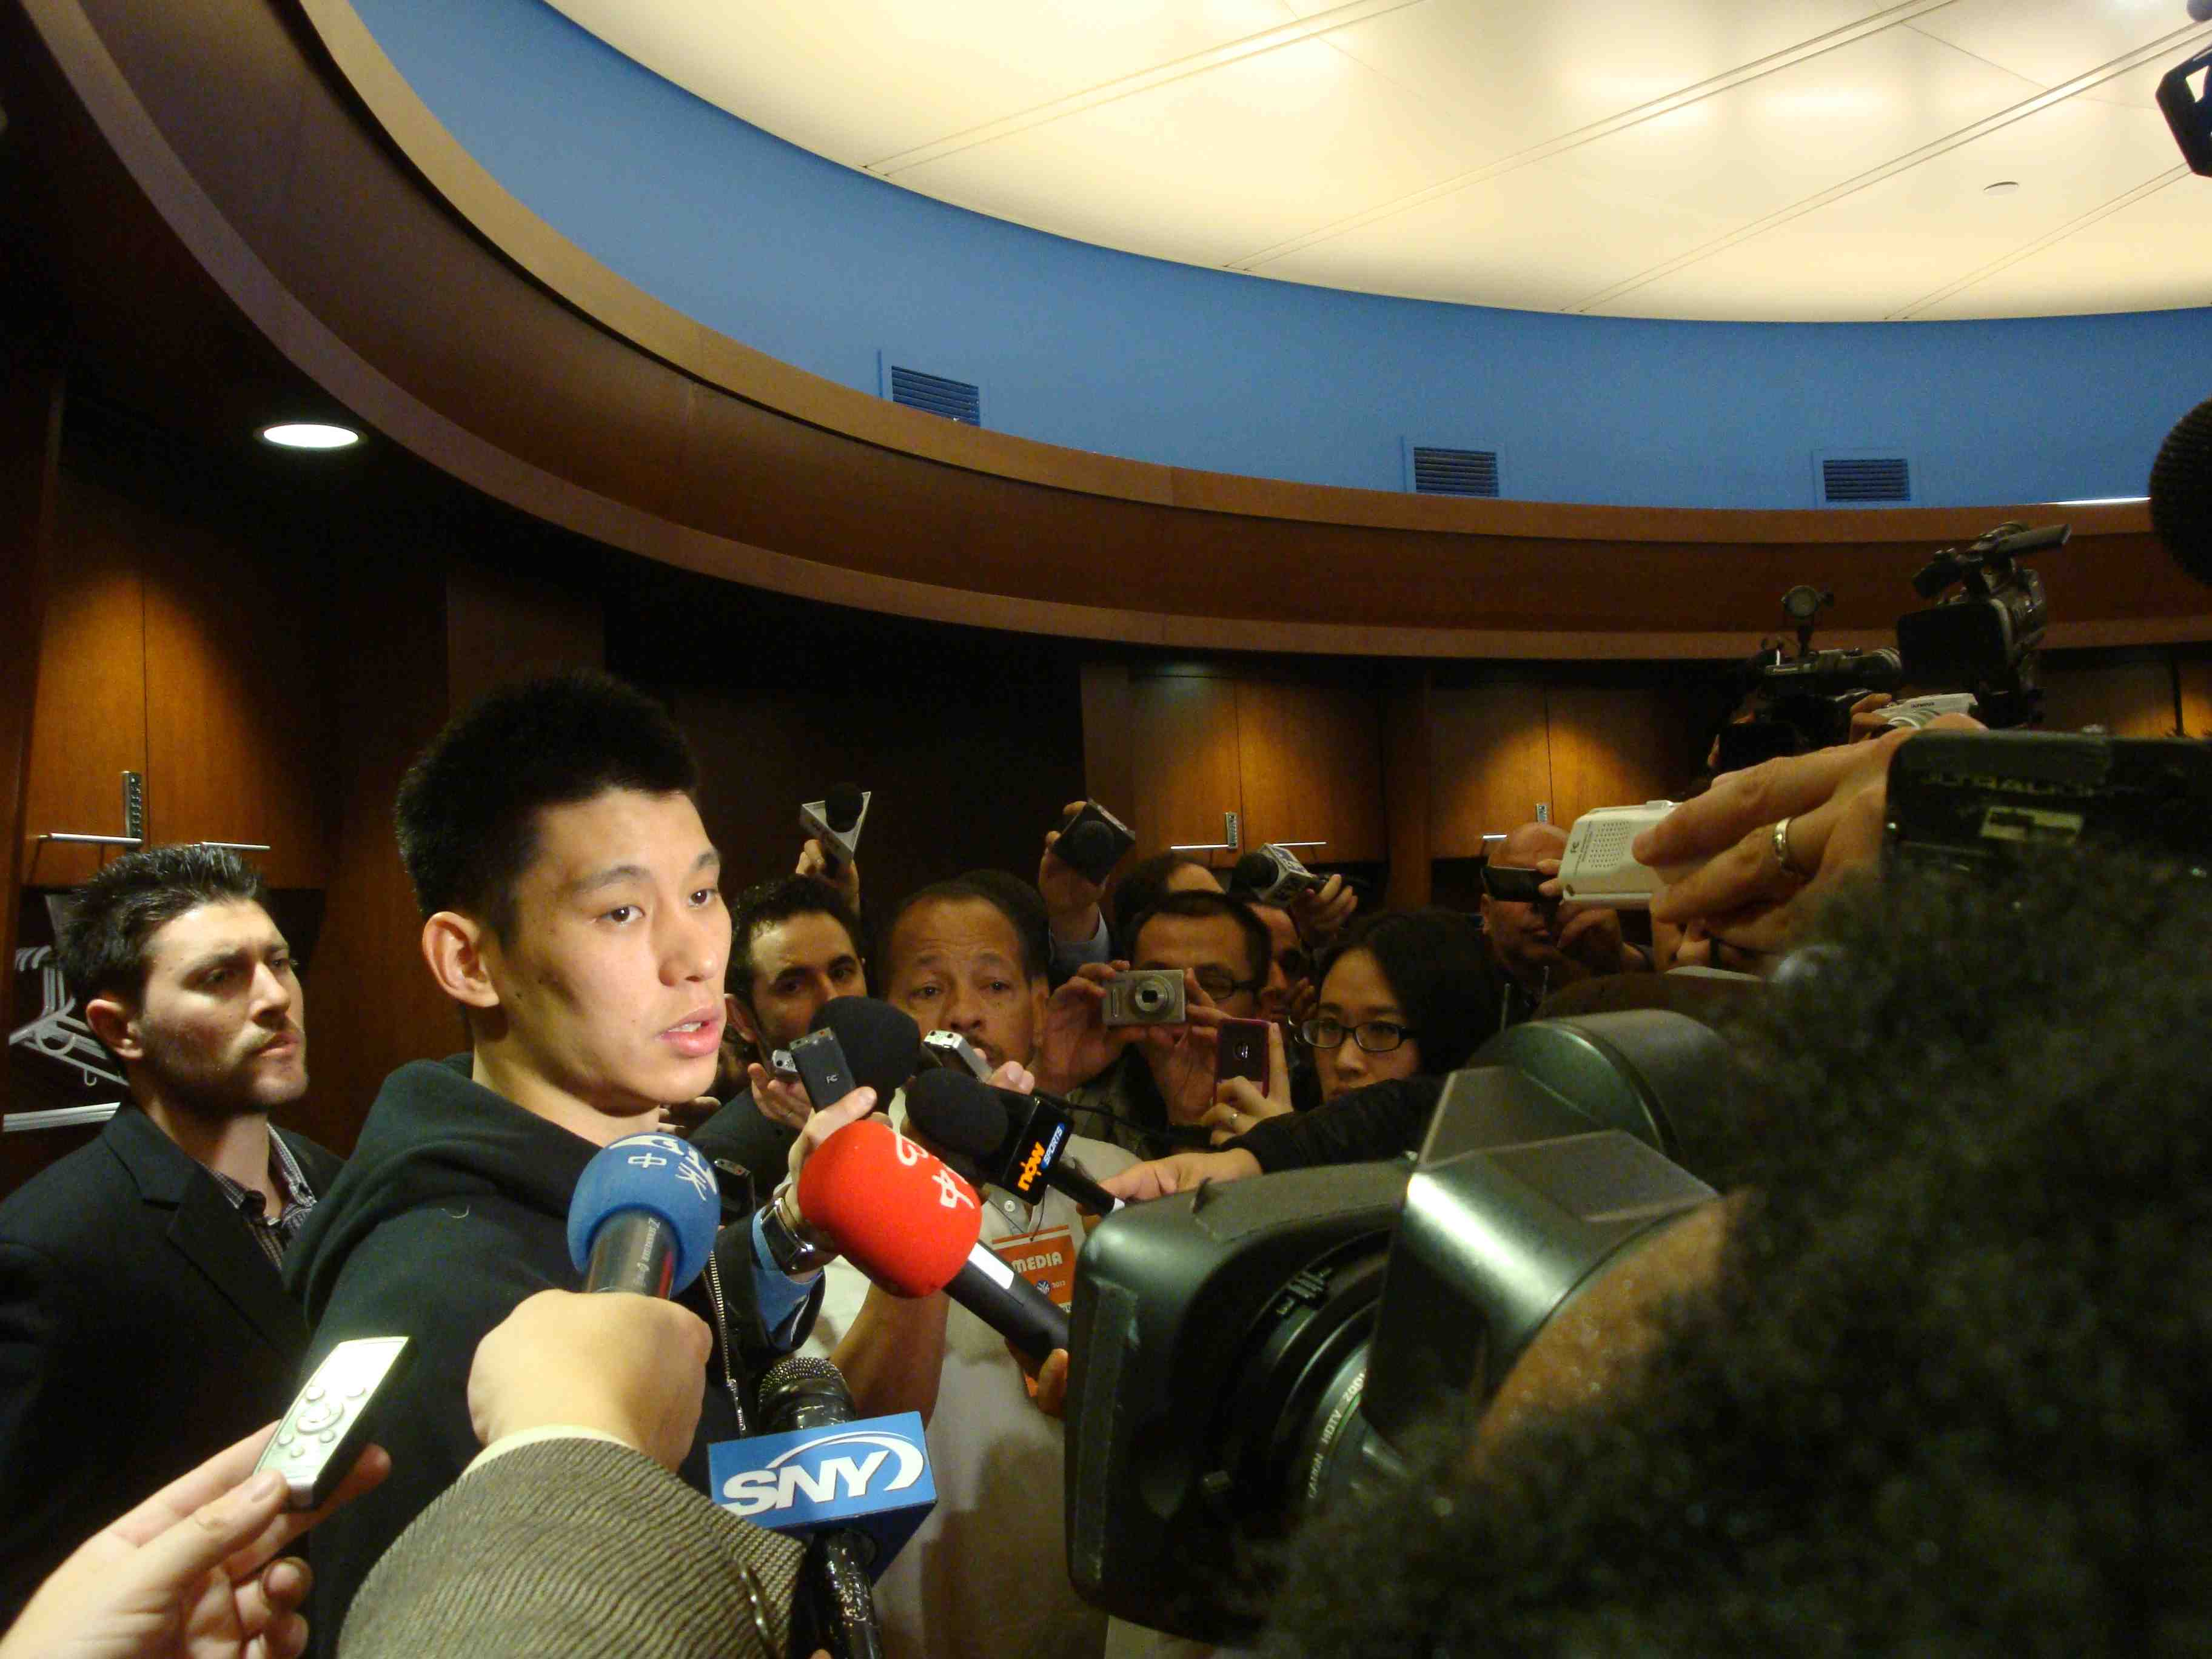 Go See Linsanity the documentary  Photo: Jeremy Lin in the Knicks locker room at Madison Square Garden March 11, 2012 Photo by Suzanne Joe Kai for AsianConnections.com